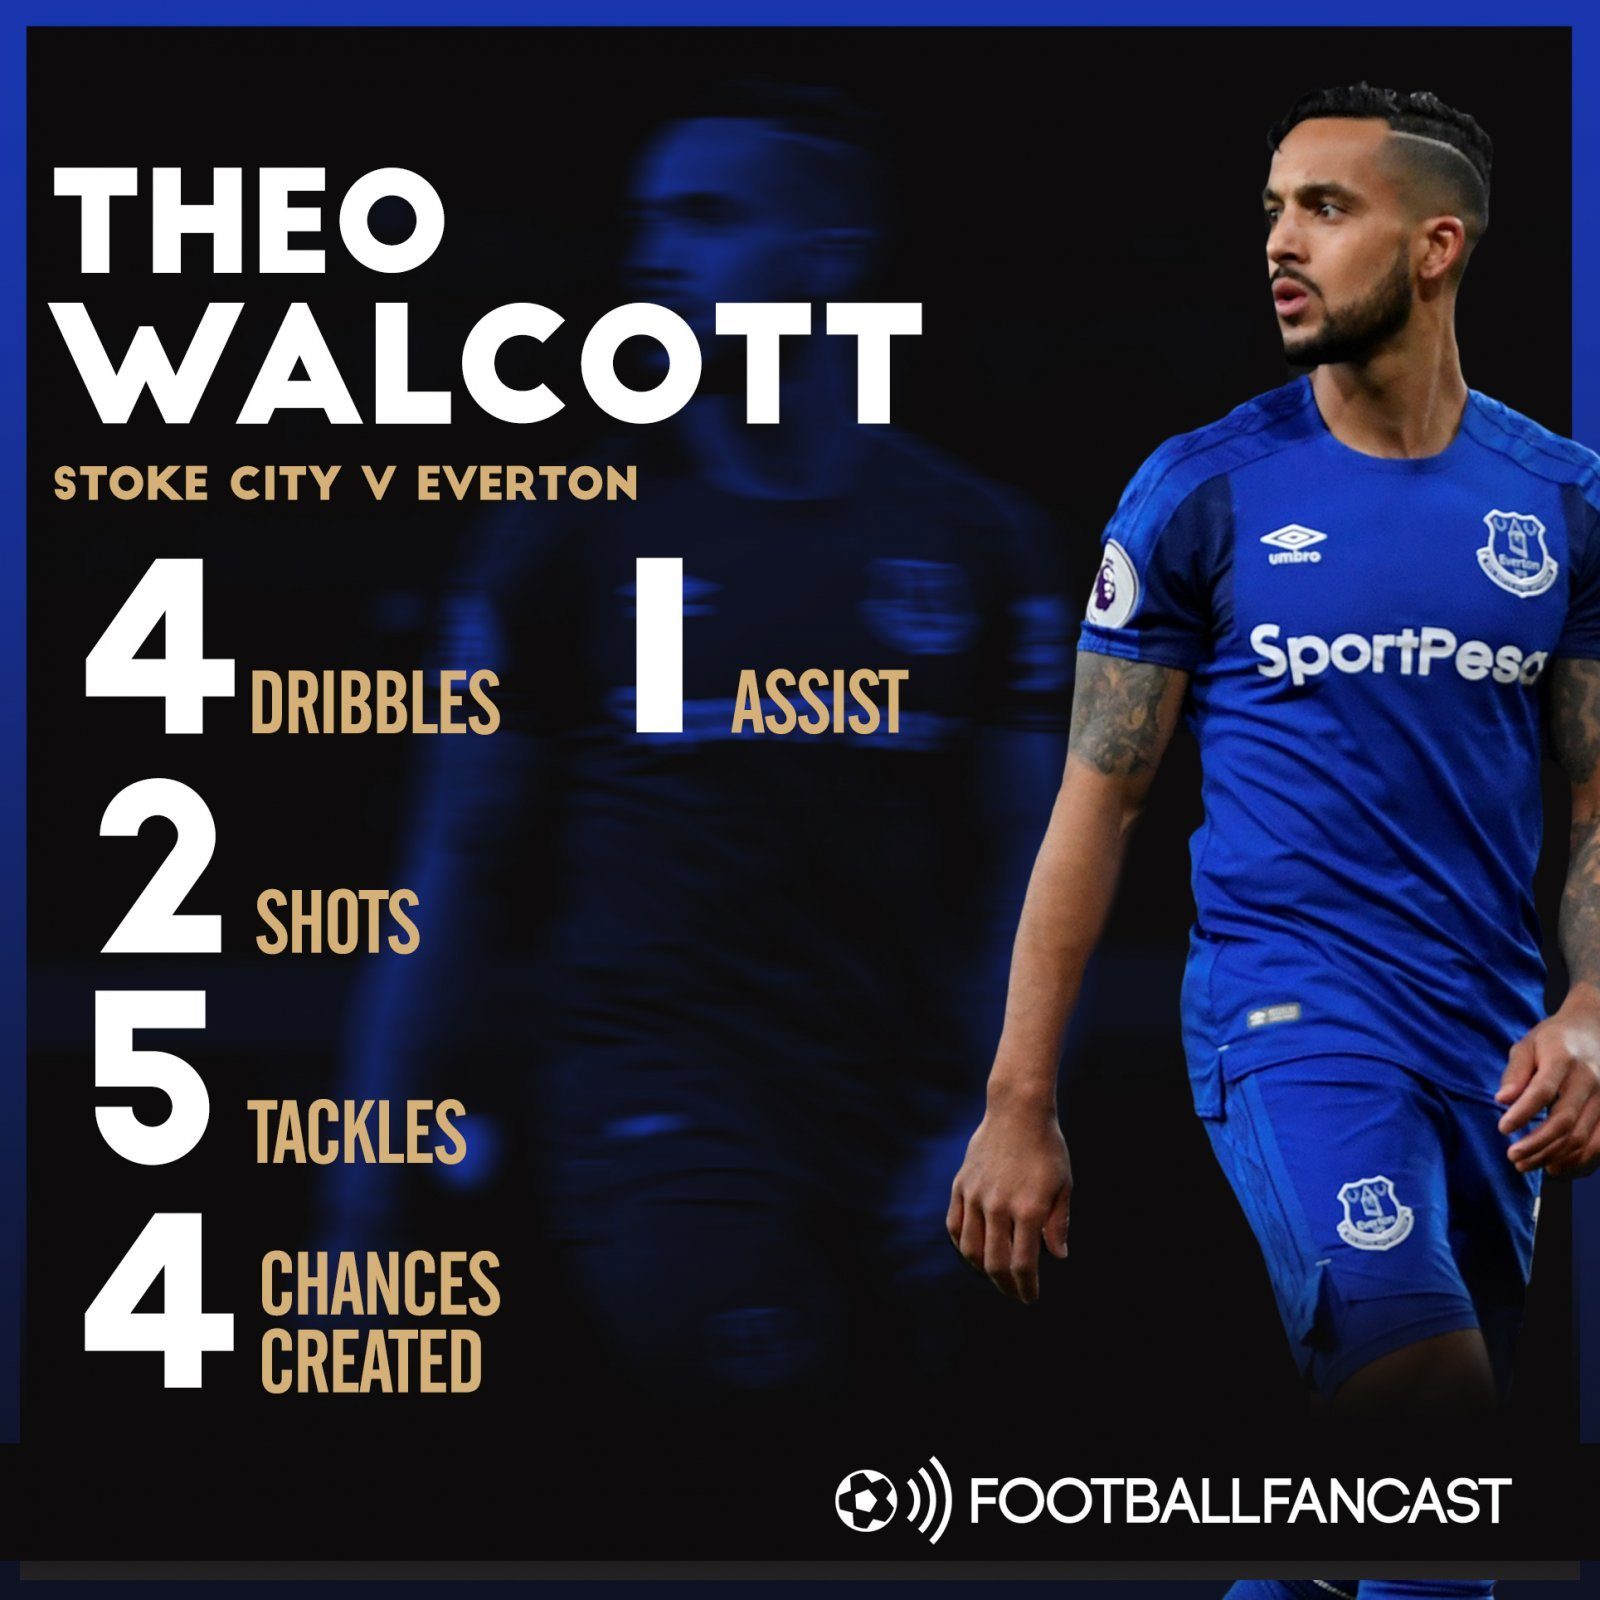 Theo Walcott's stats from 2-1 win over Stoke City